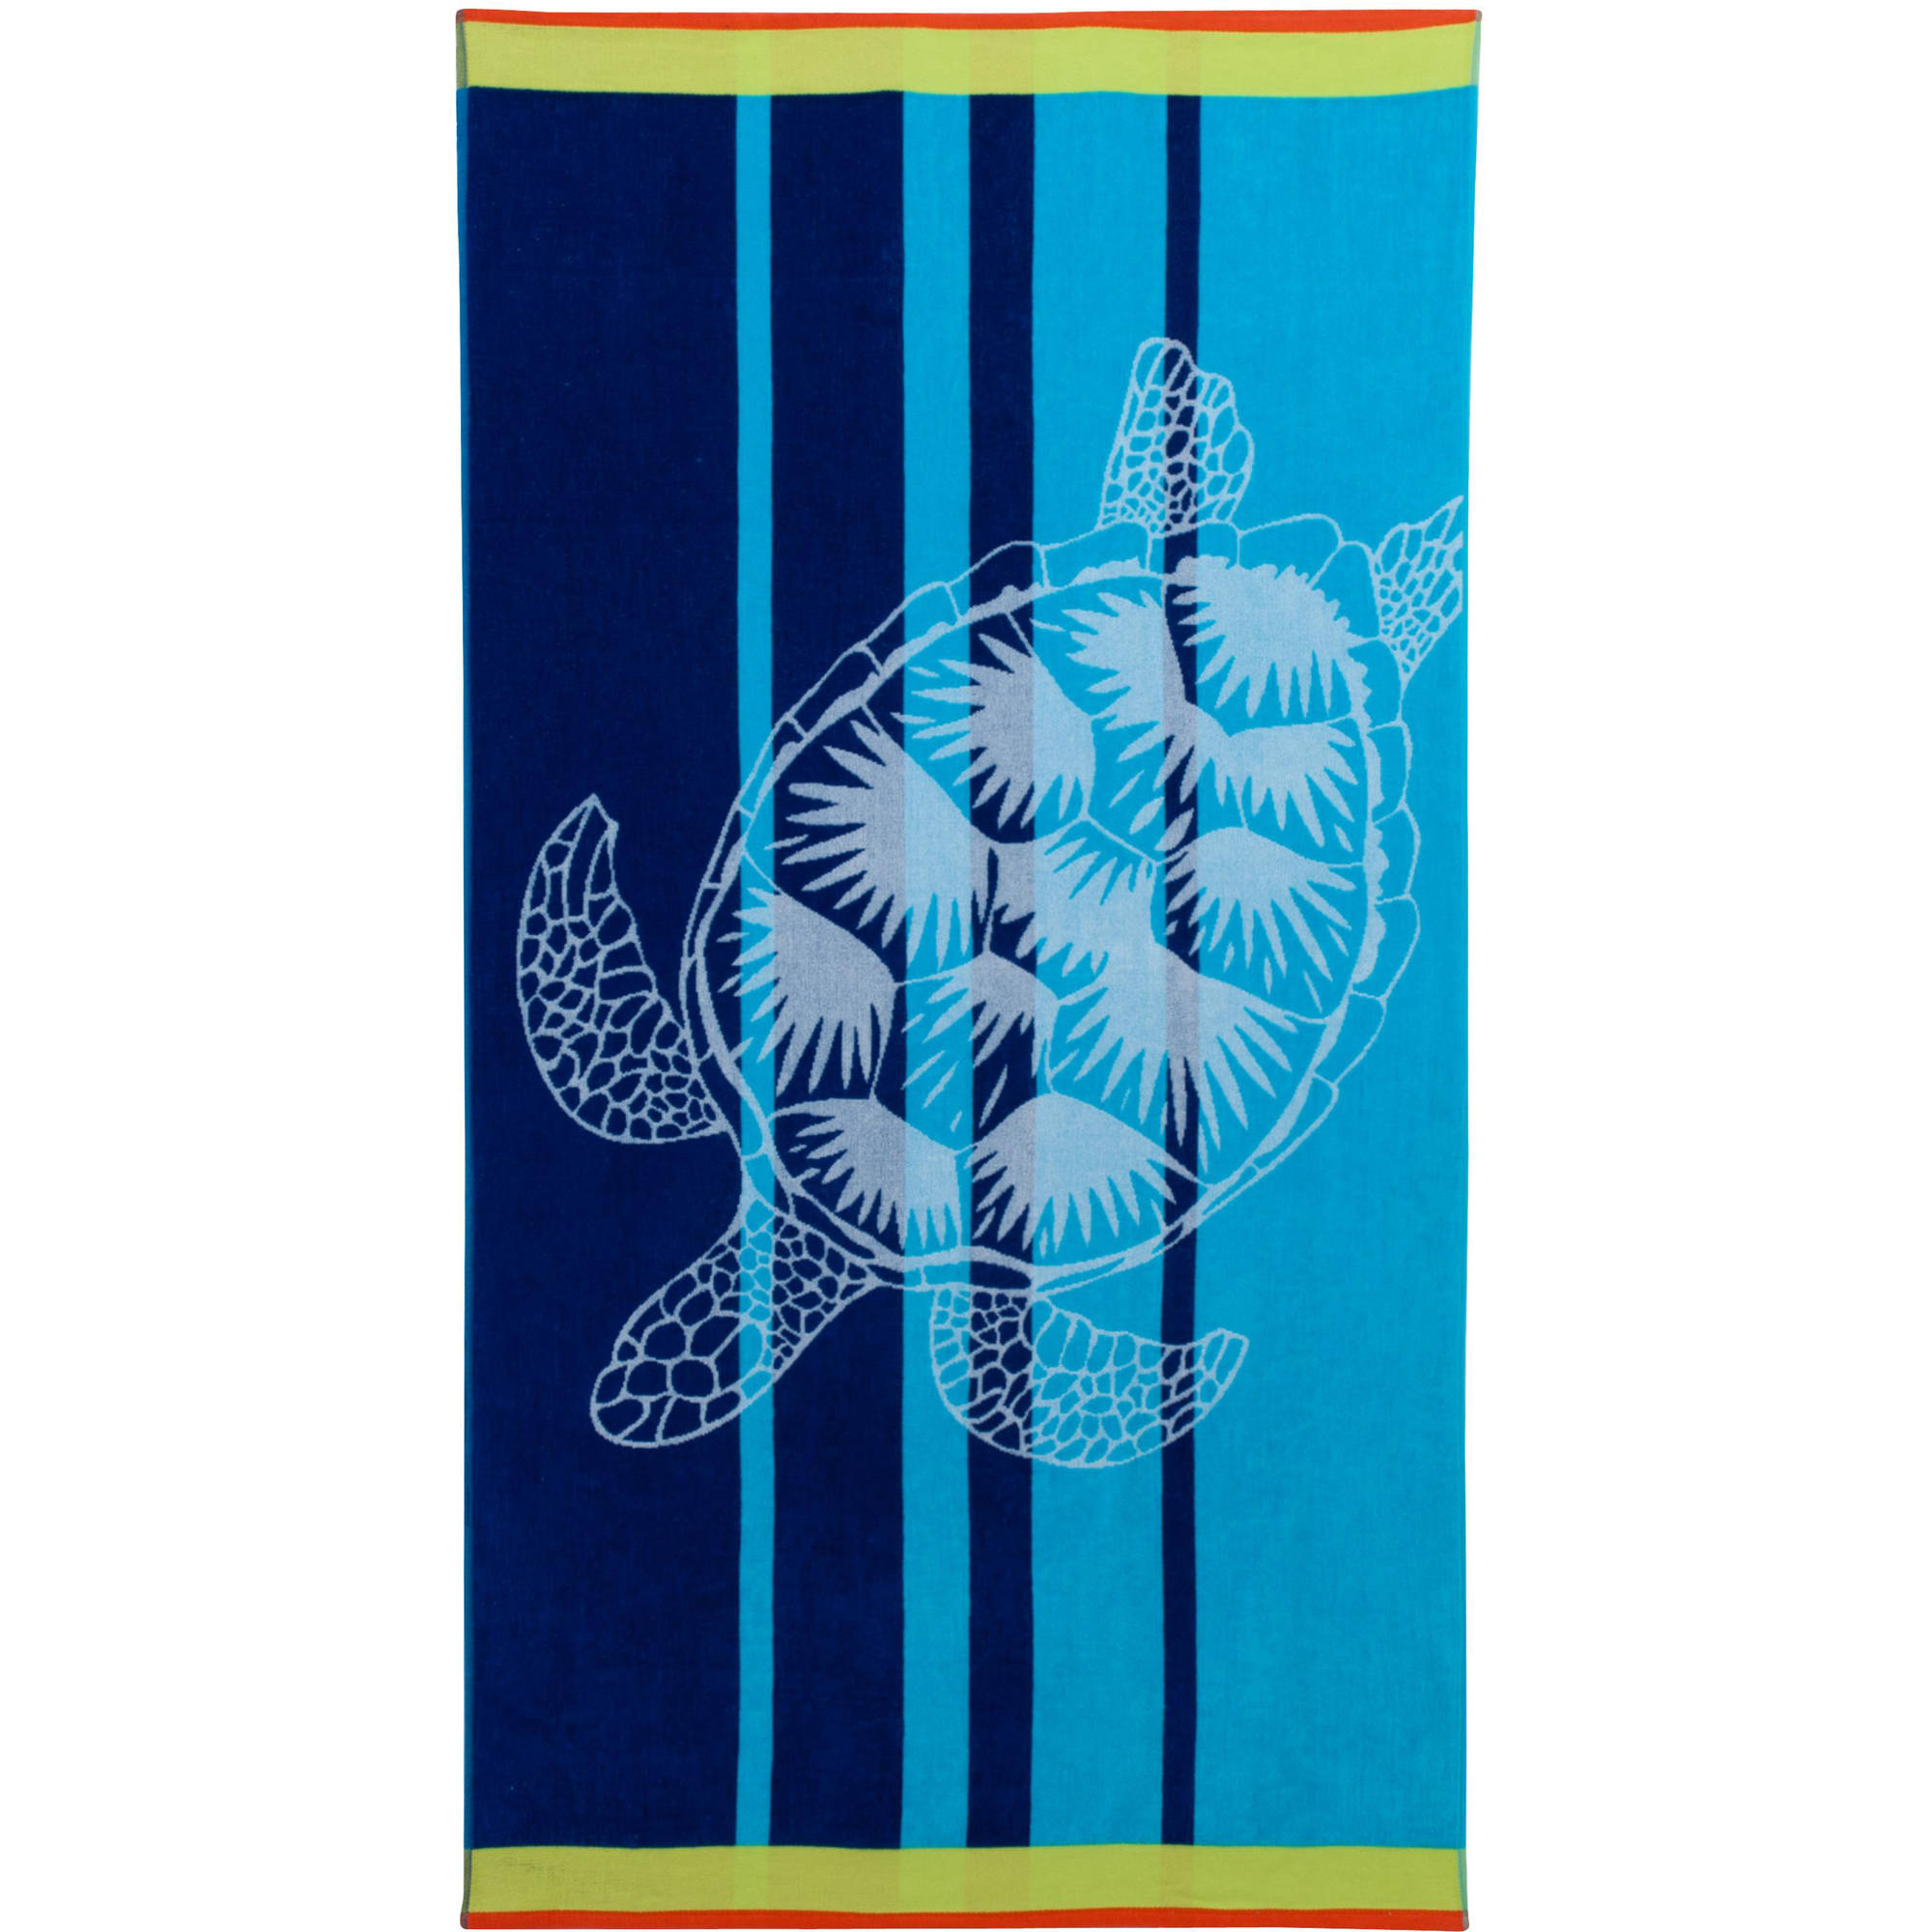 Mainstays Oversized Beach Towel, Blue Turtle, Pack of 2